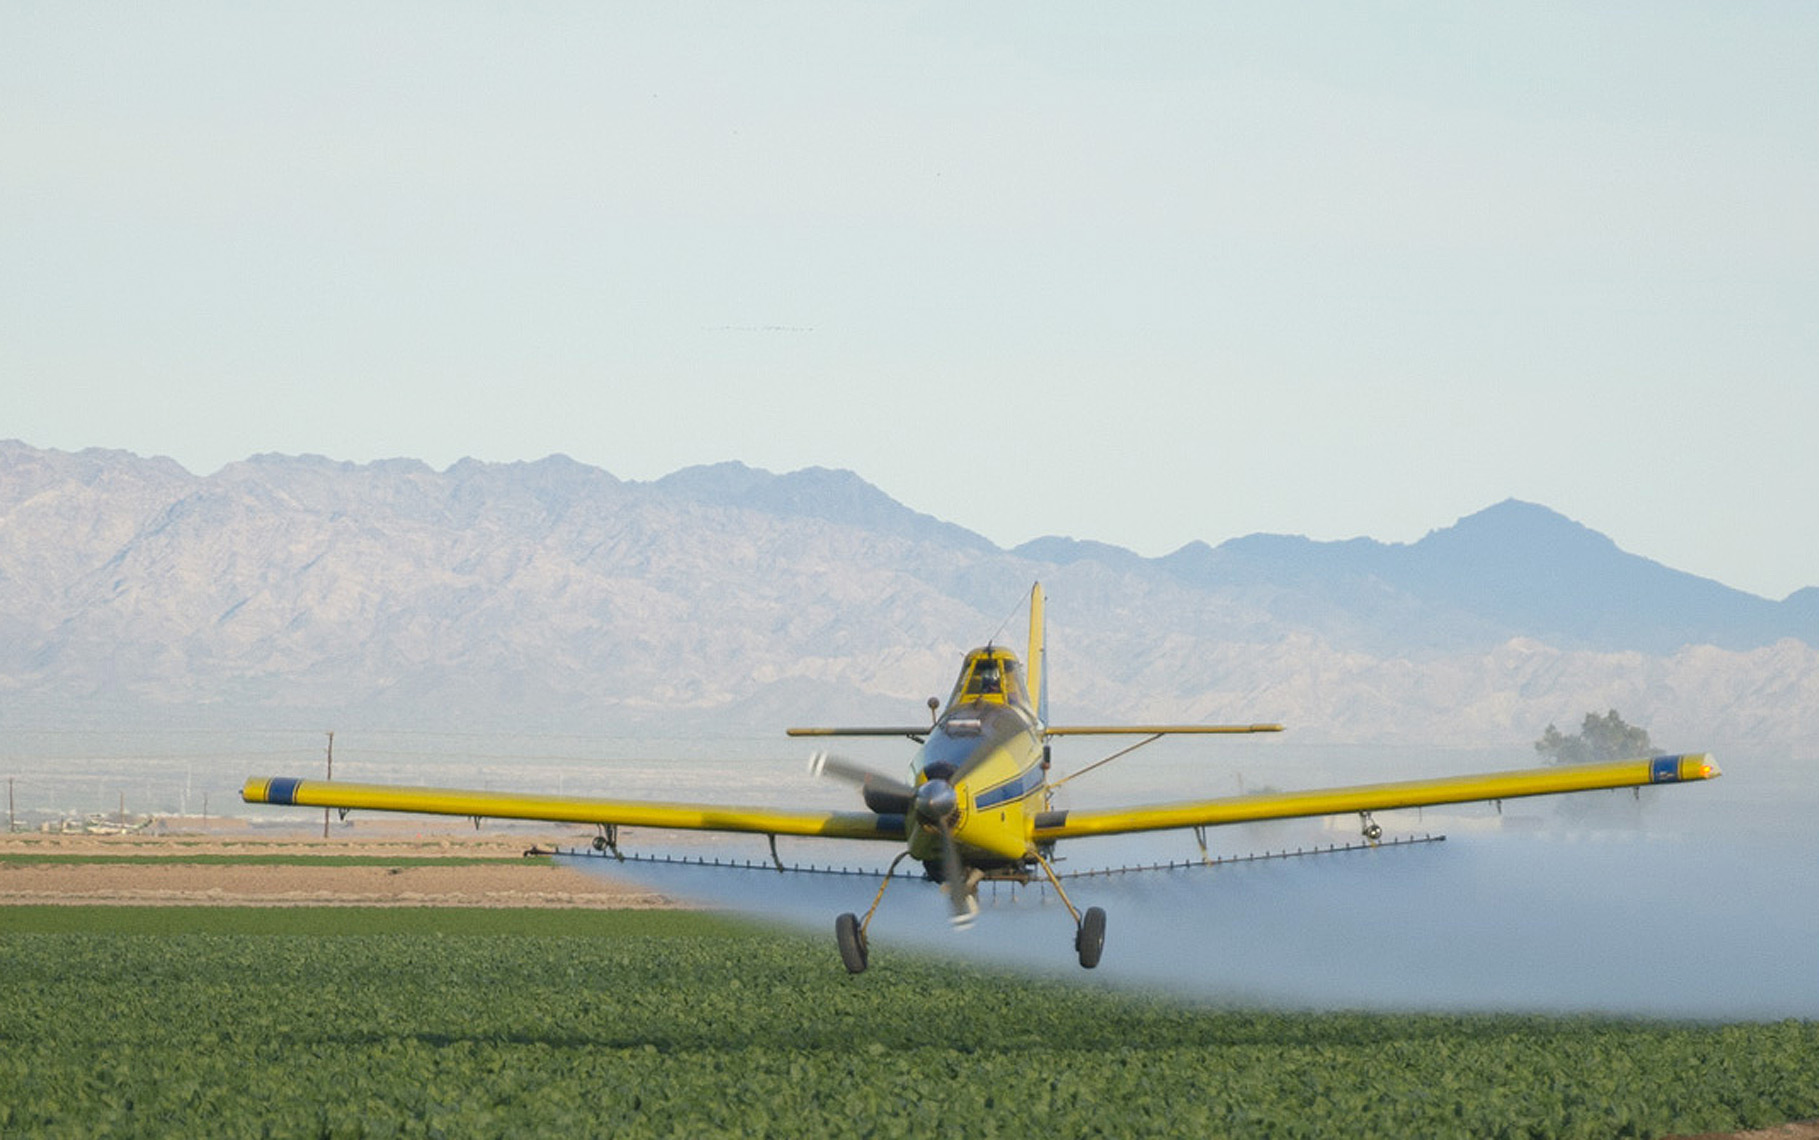 Salton Sea Sprayplane_98 copy.jpg